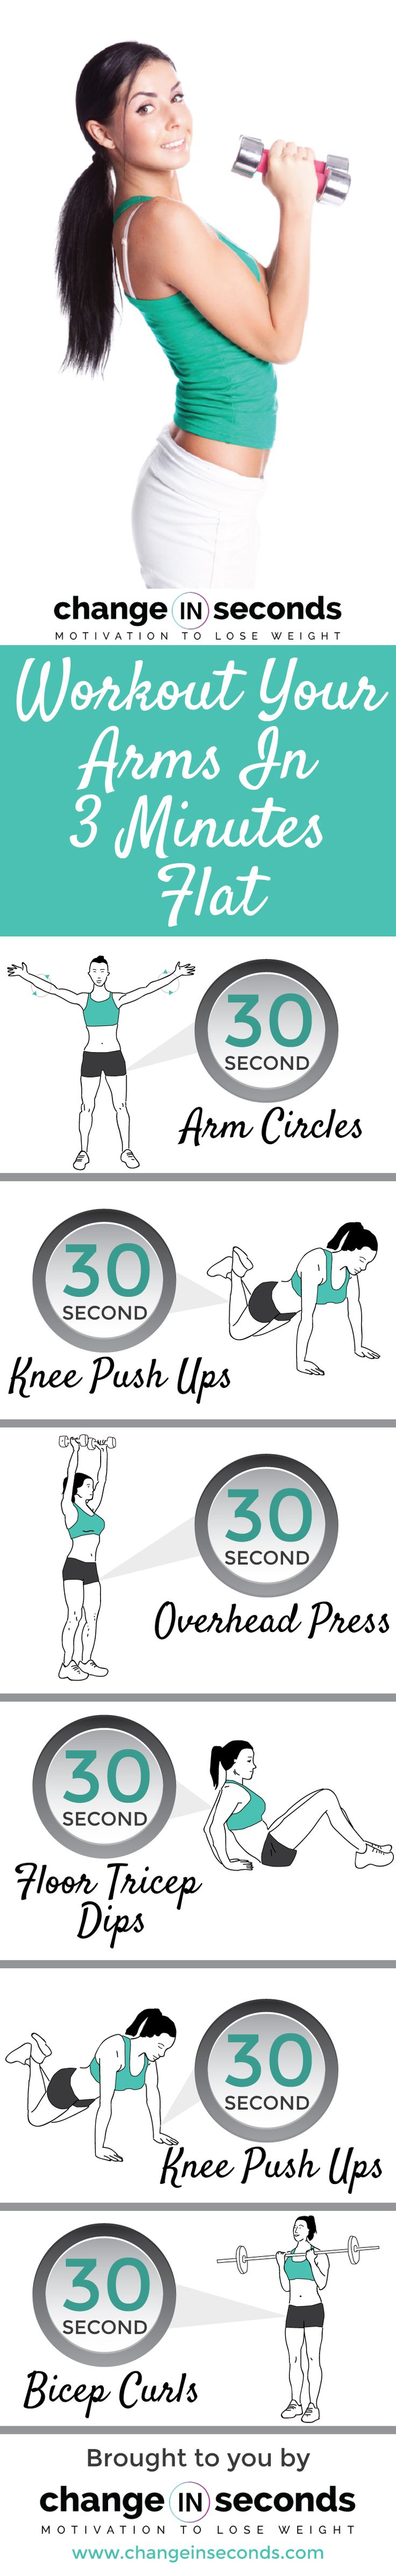 Workout Your Arms In 3 Minutes Flat (Download PDF)